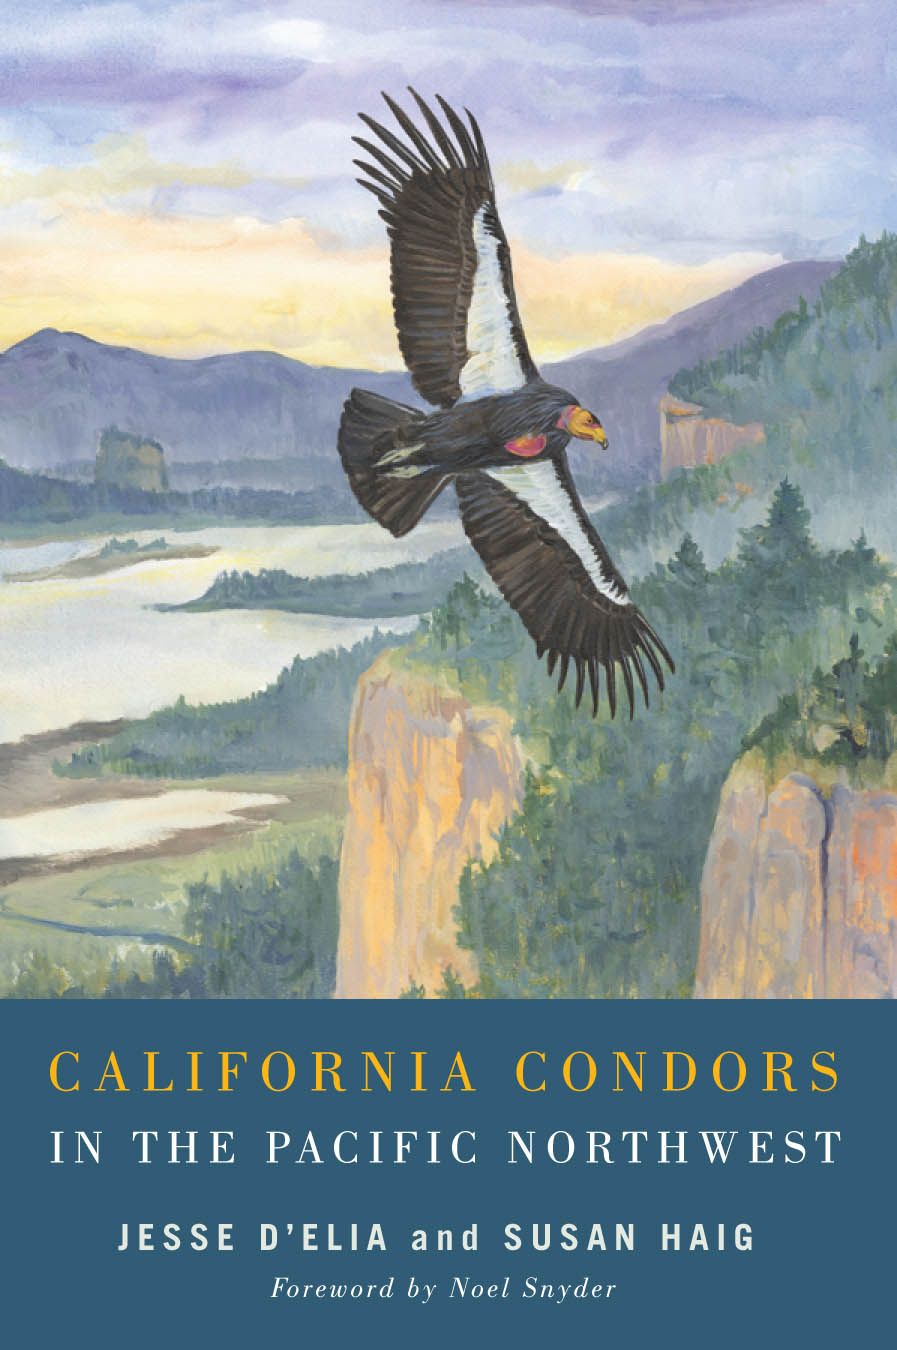 California Condors of the Pacific Northwest (book cover)